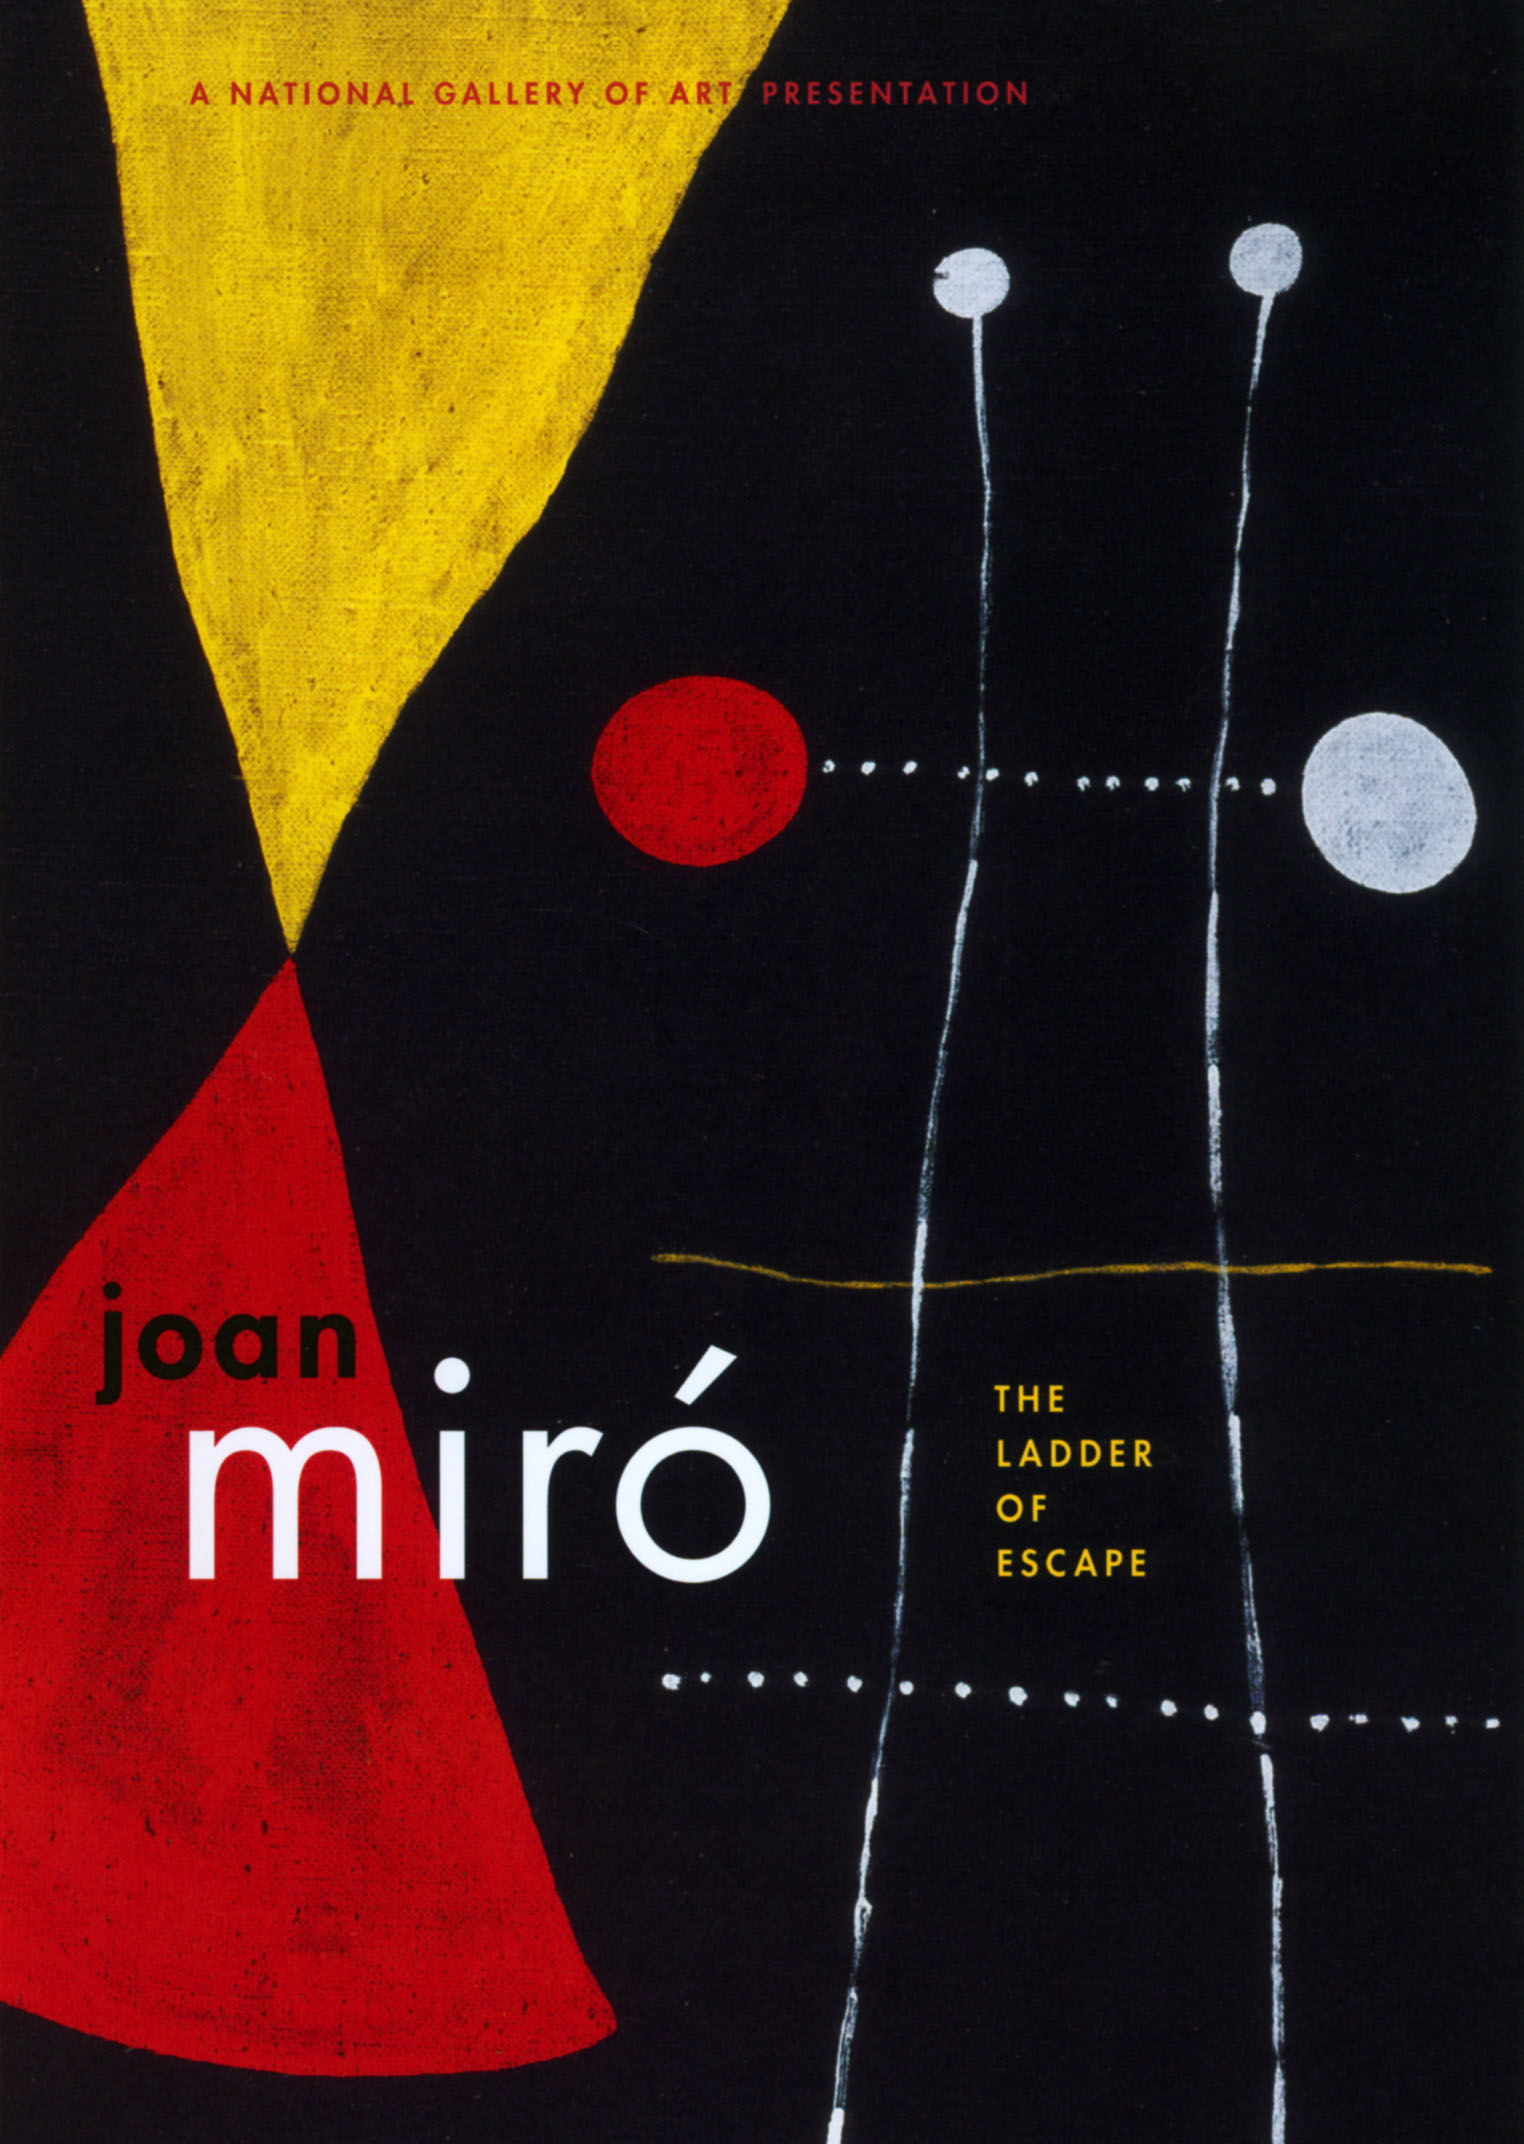 Joan Miró: The Ladder of Escape